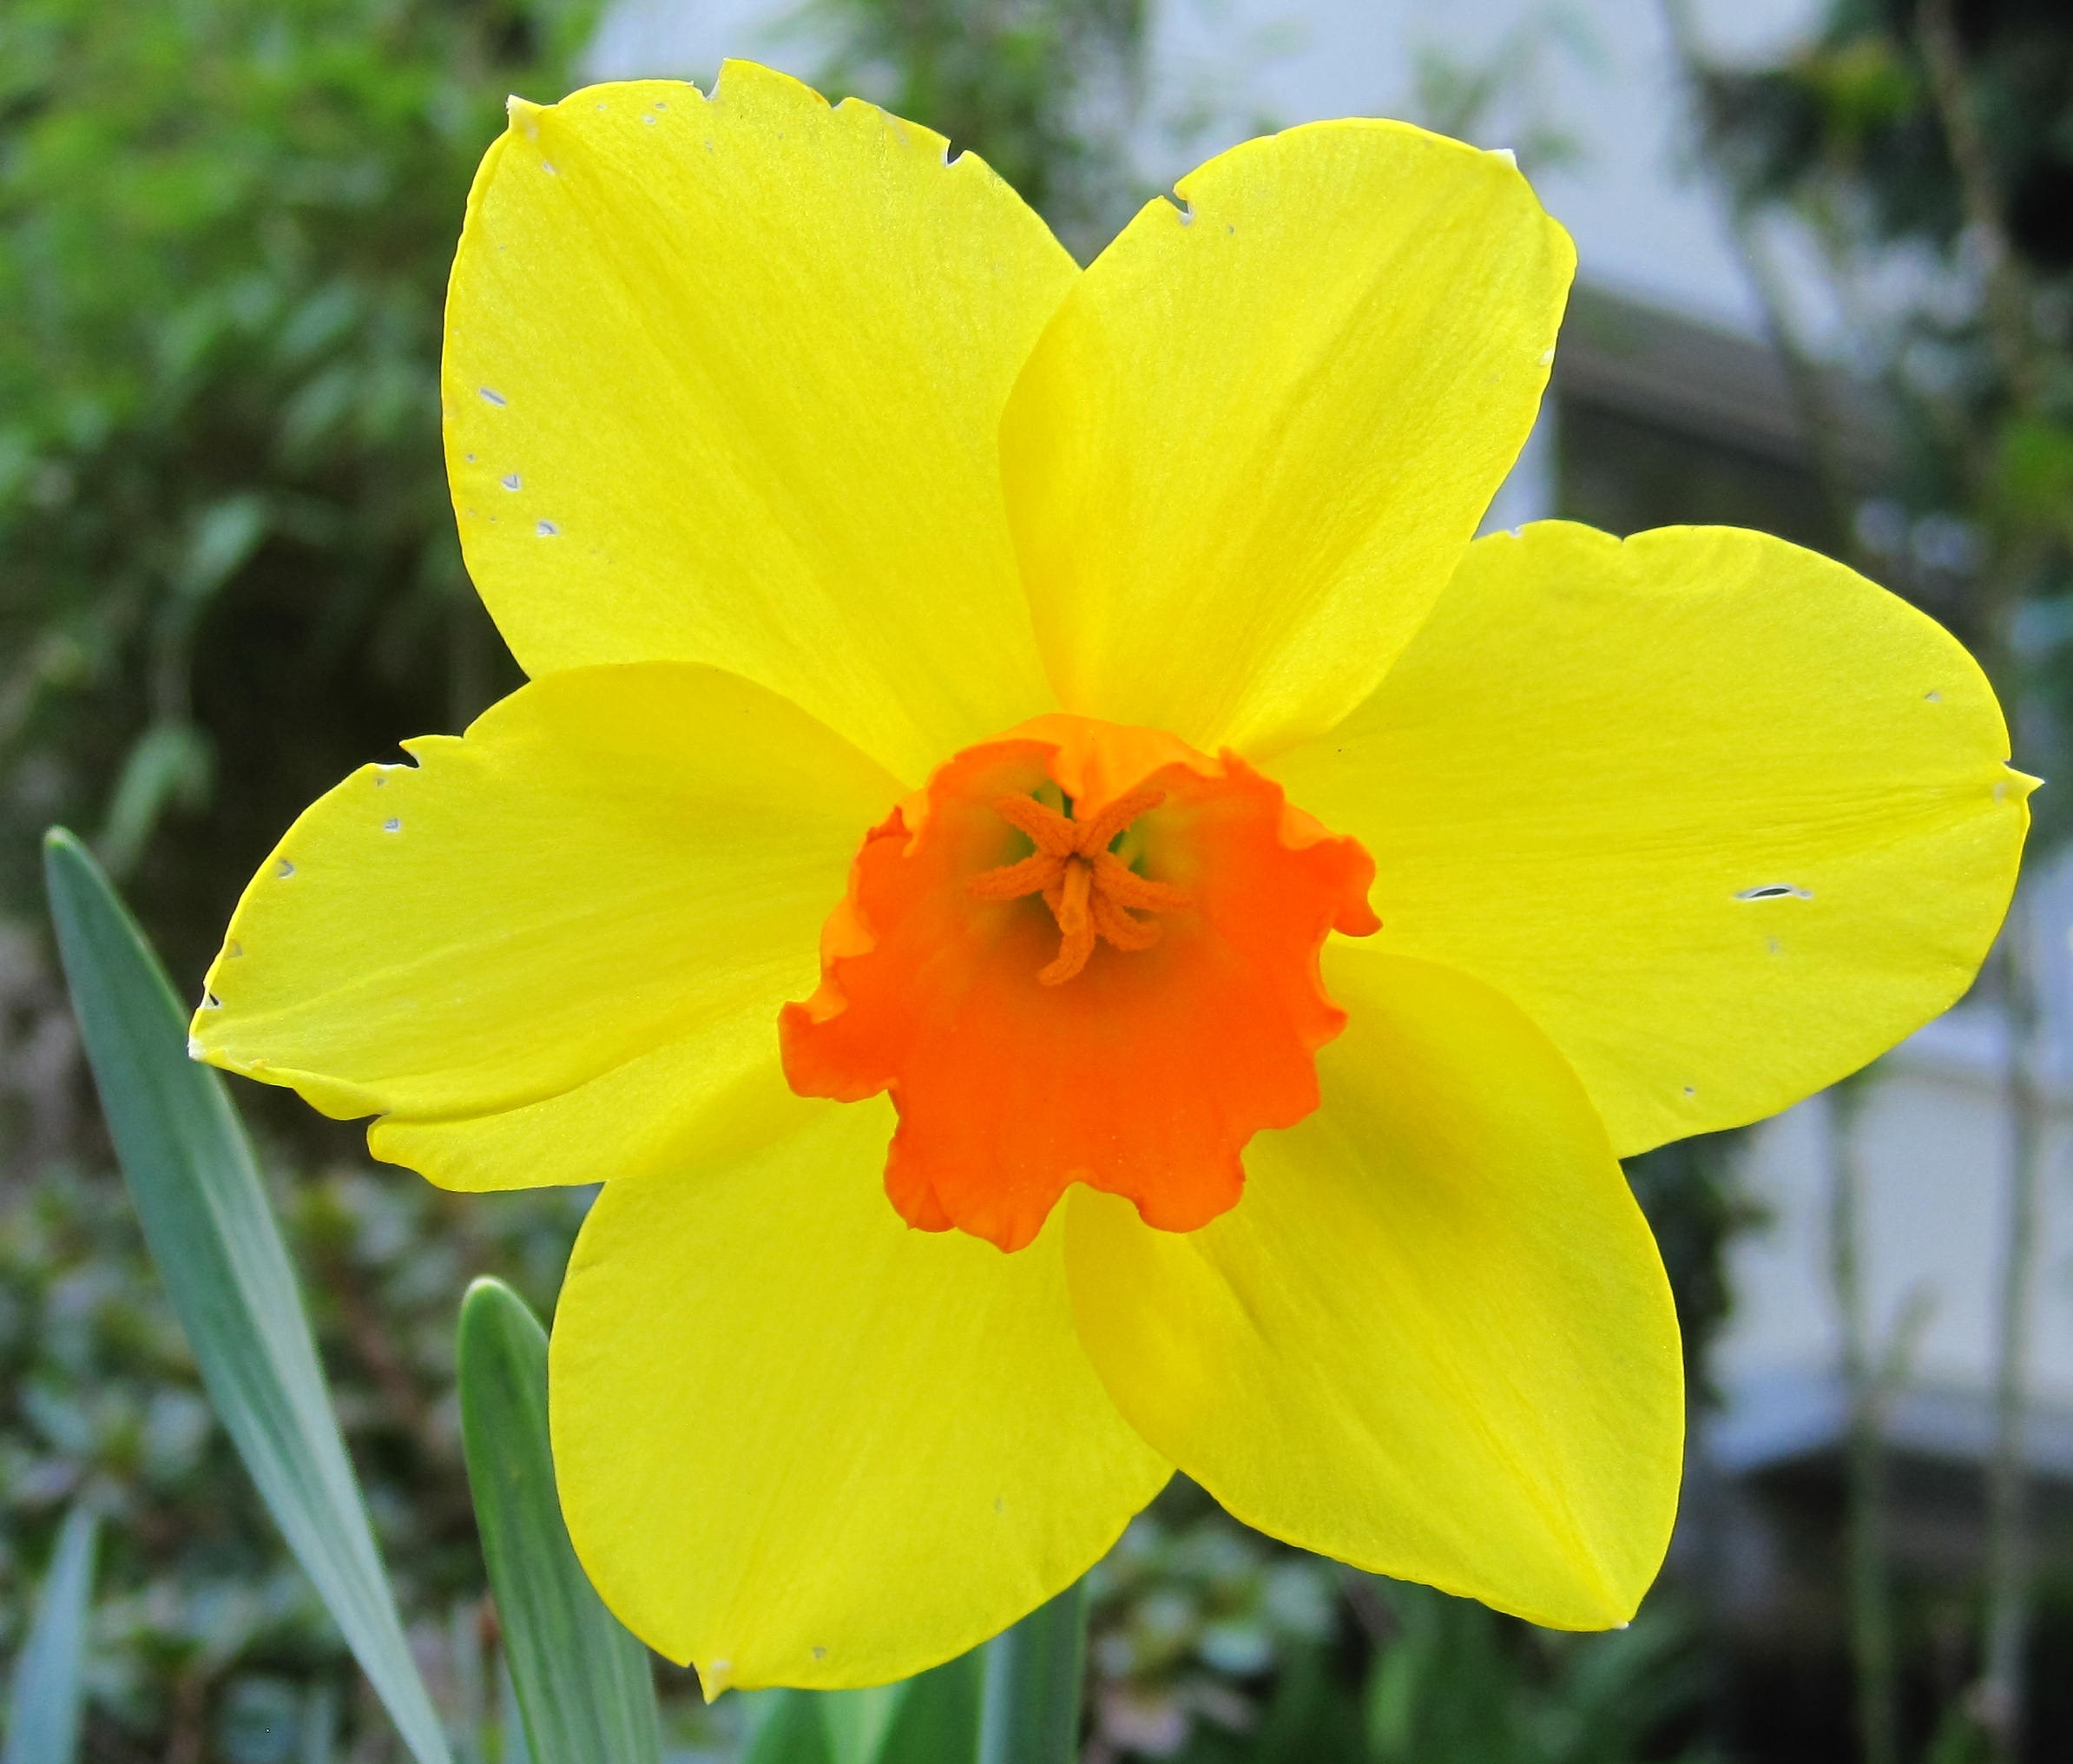 Spring yellow-and orange daffodil season